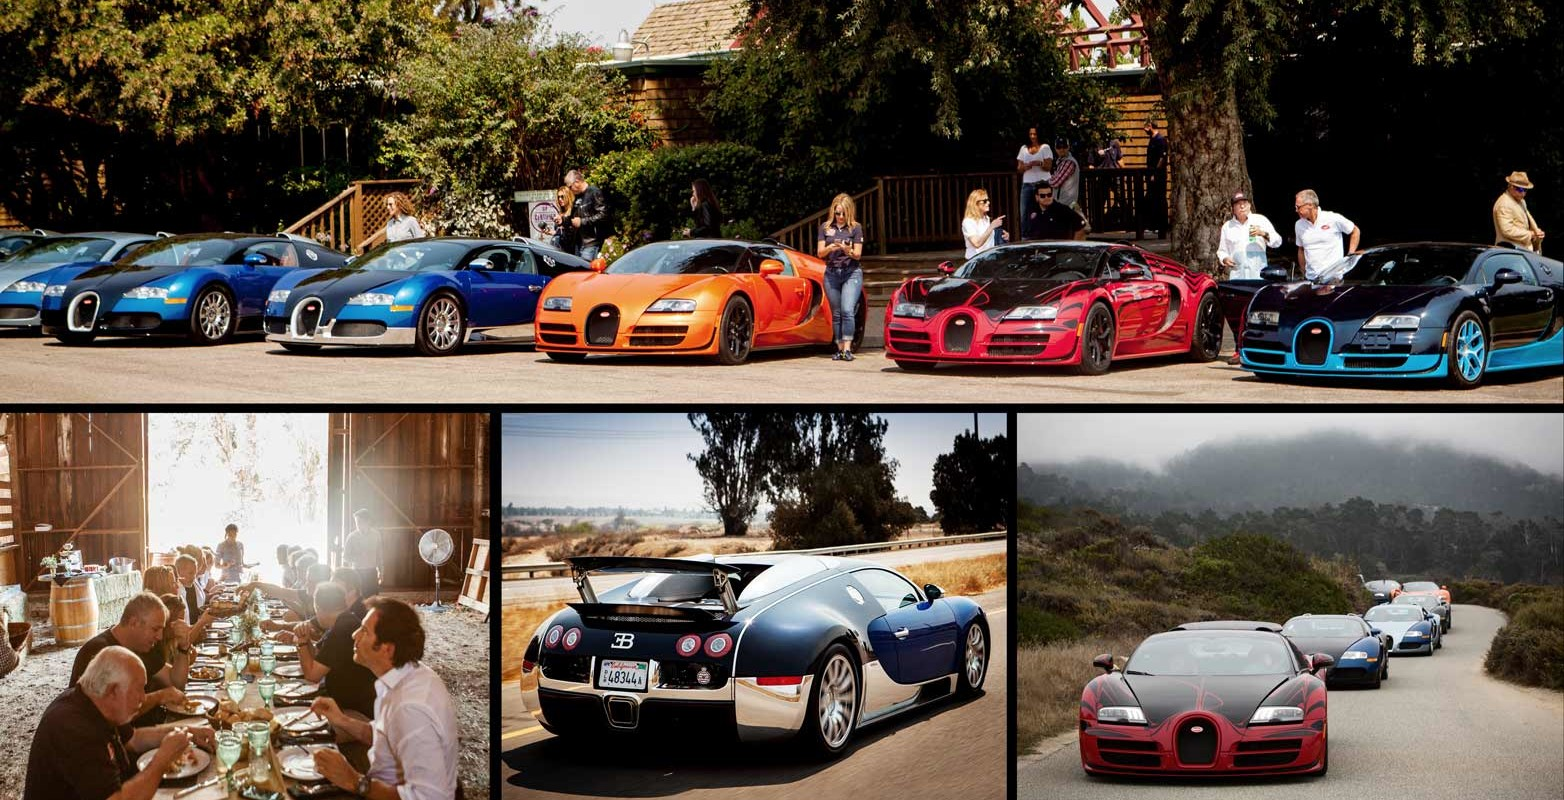 Bugatti > Pebble Beach Road Rally